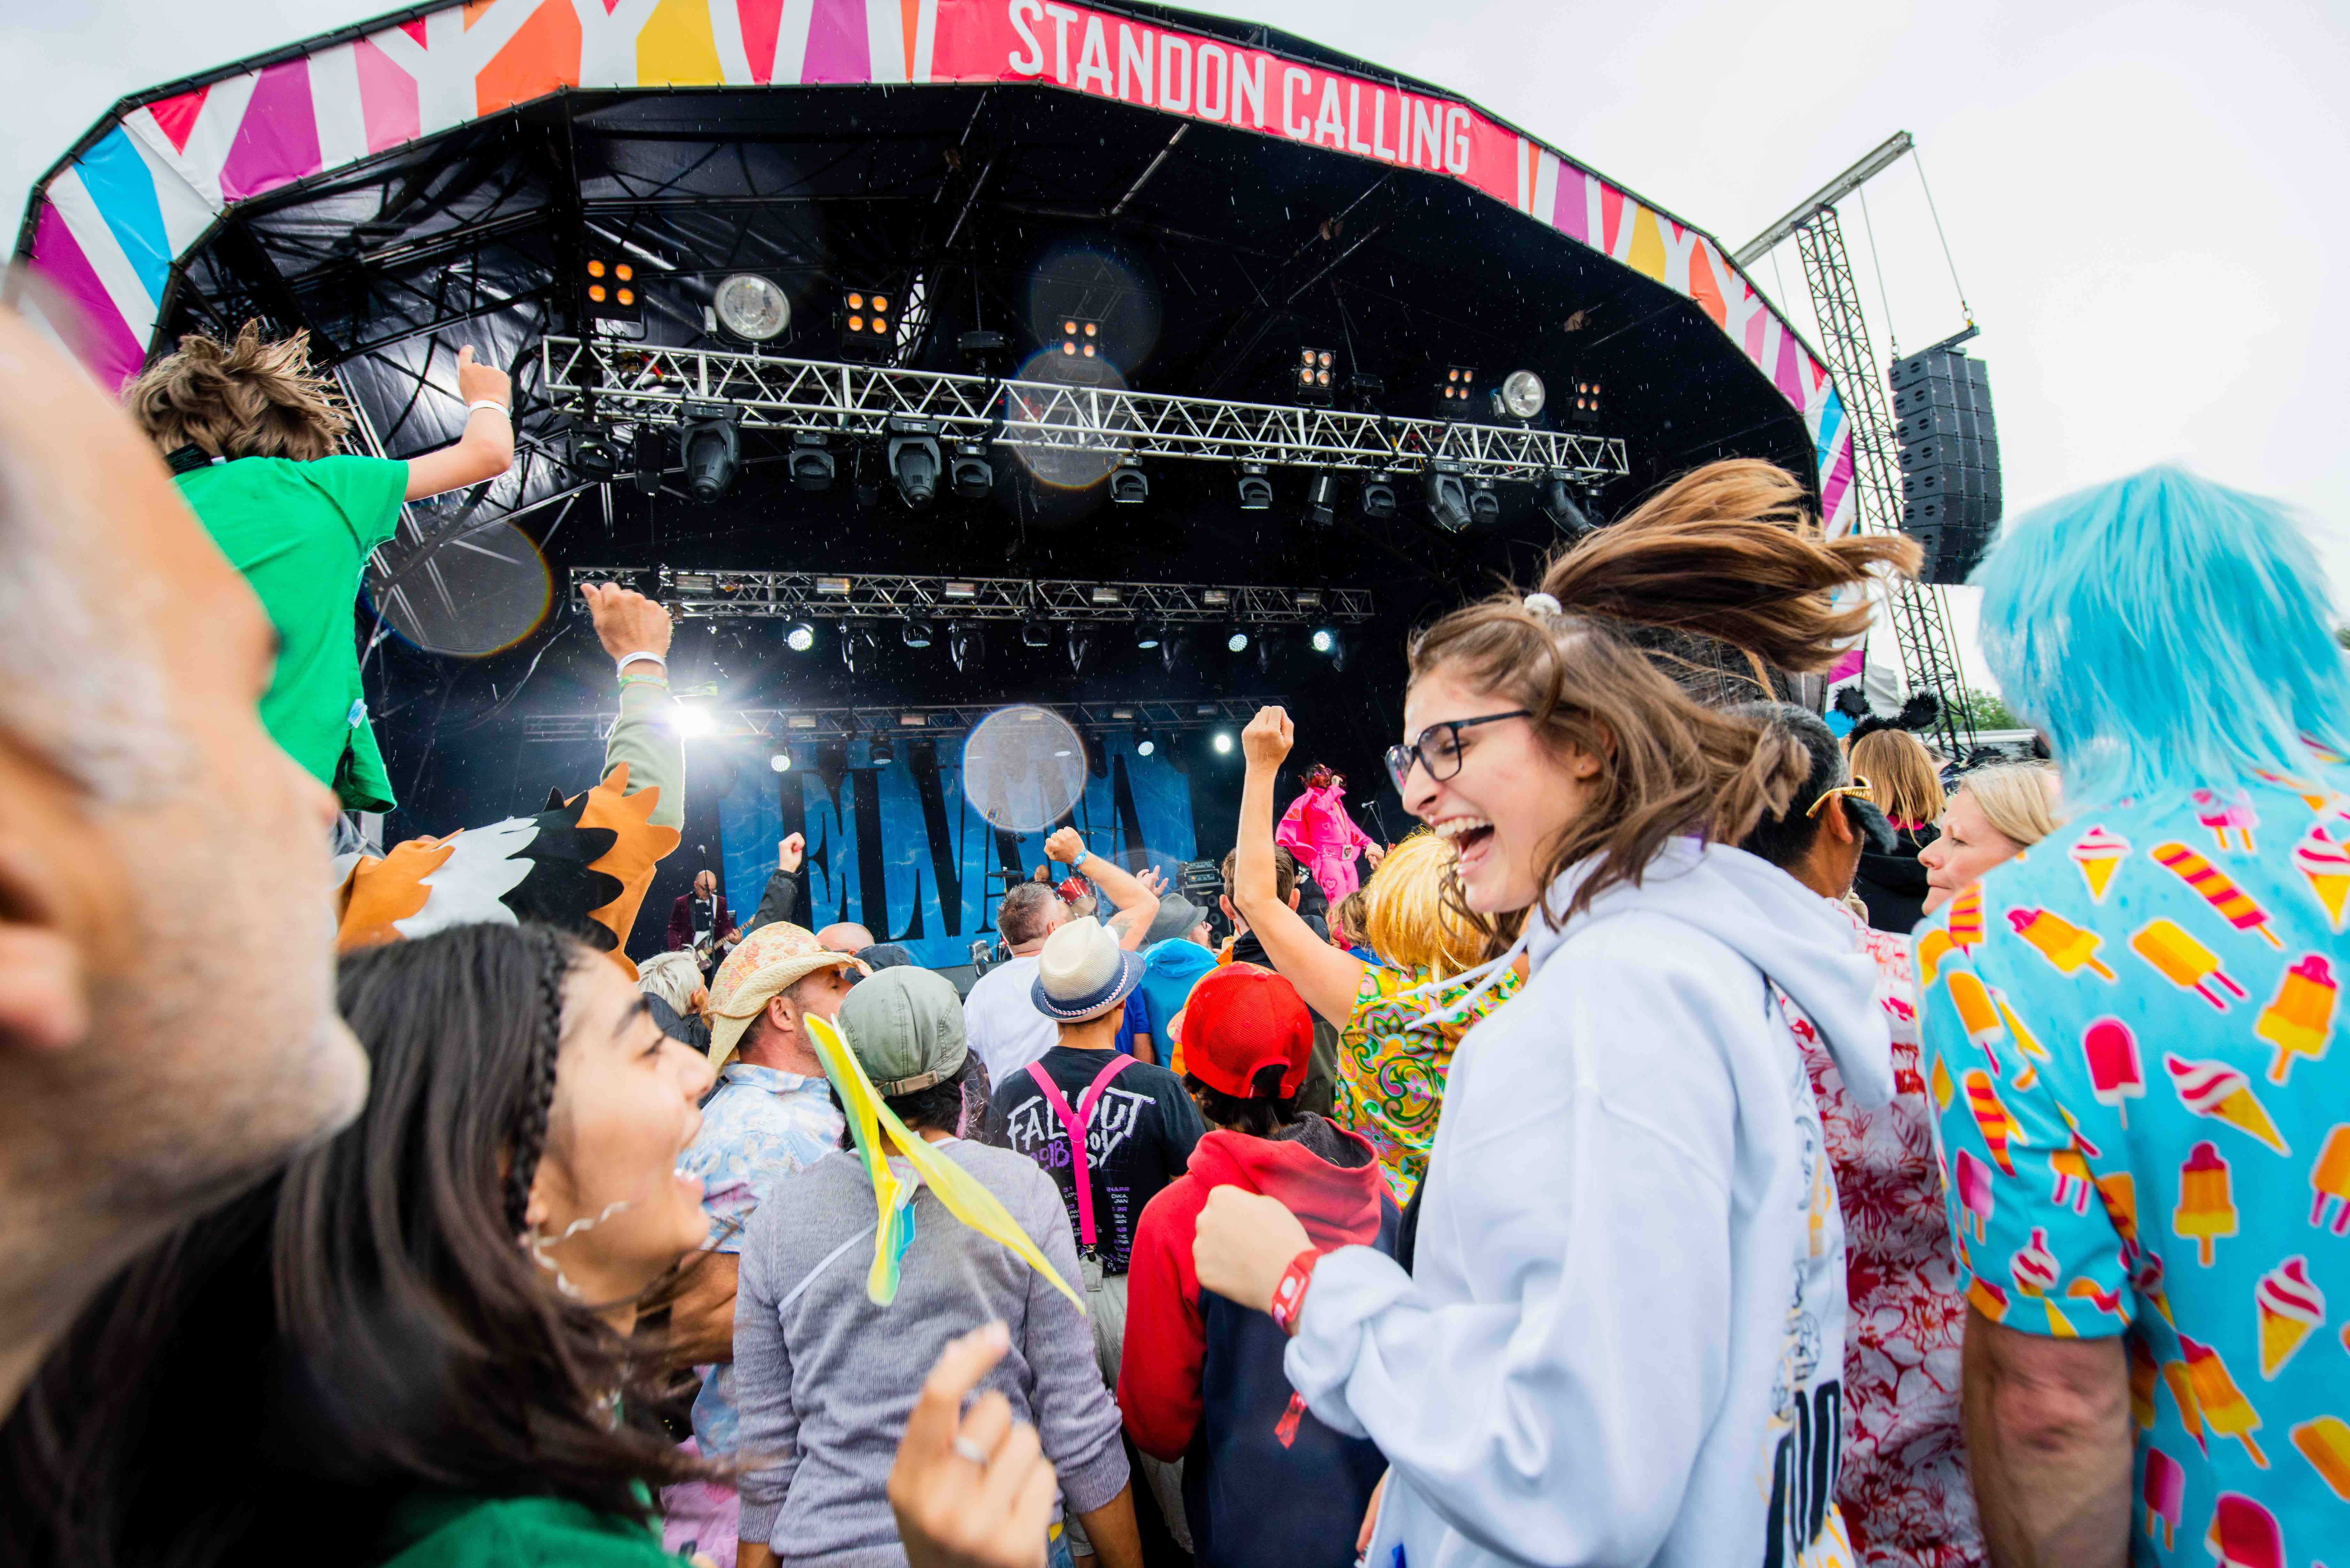 People dancing in front of the stage at Standon Calling Festival